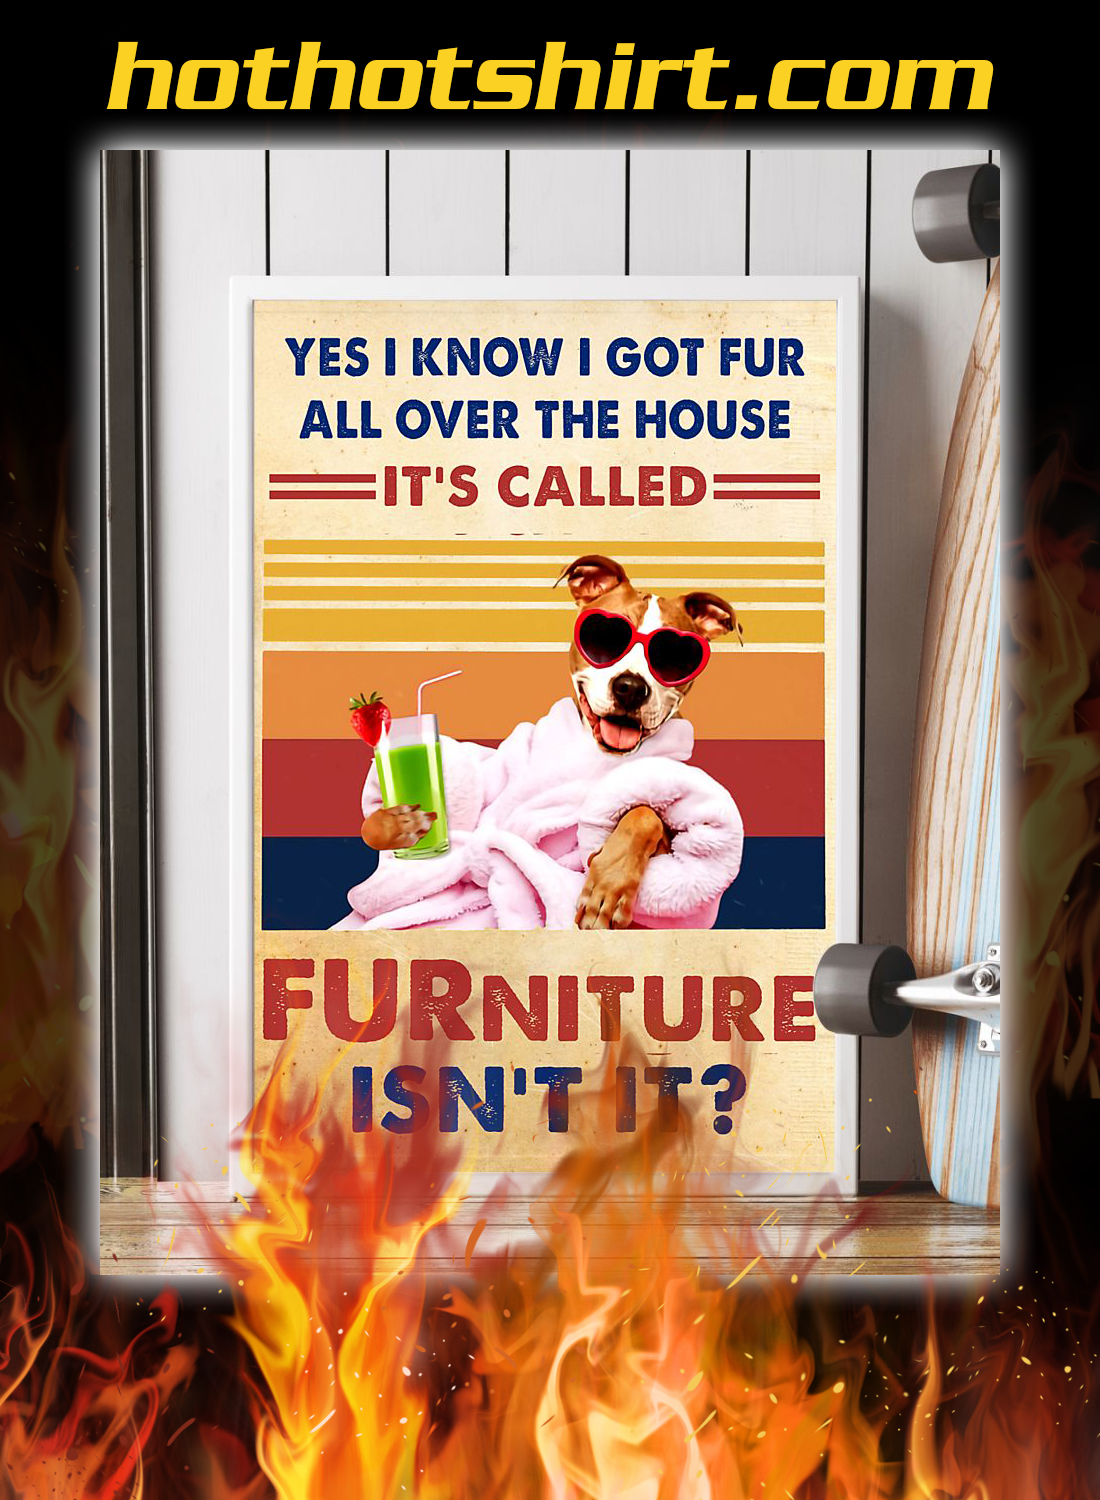 Pitbull yes i know i got fur all over the house it's called FURniture isn't it poster 3